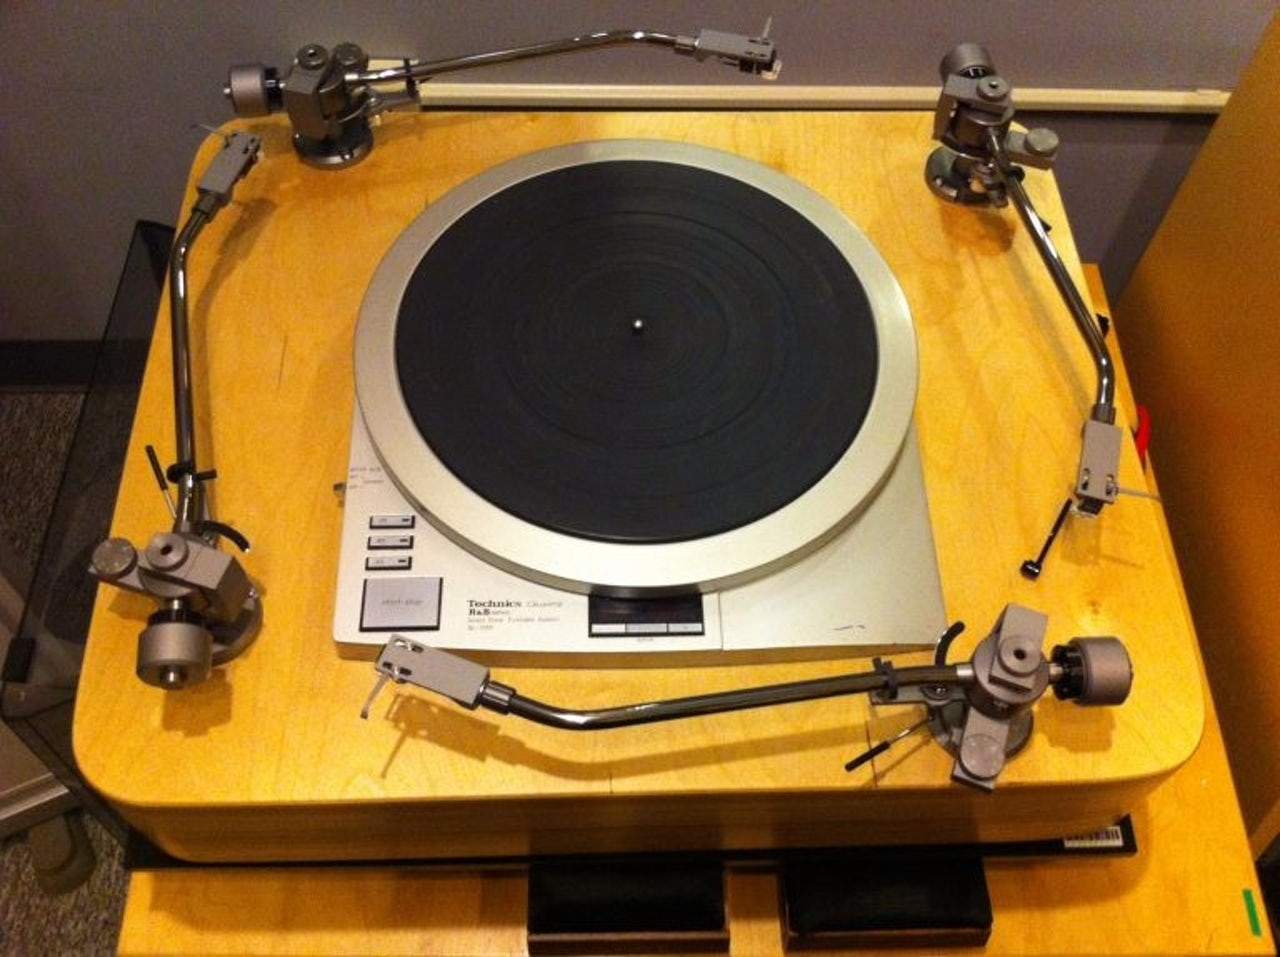 George Blood's four-armed turntable